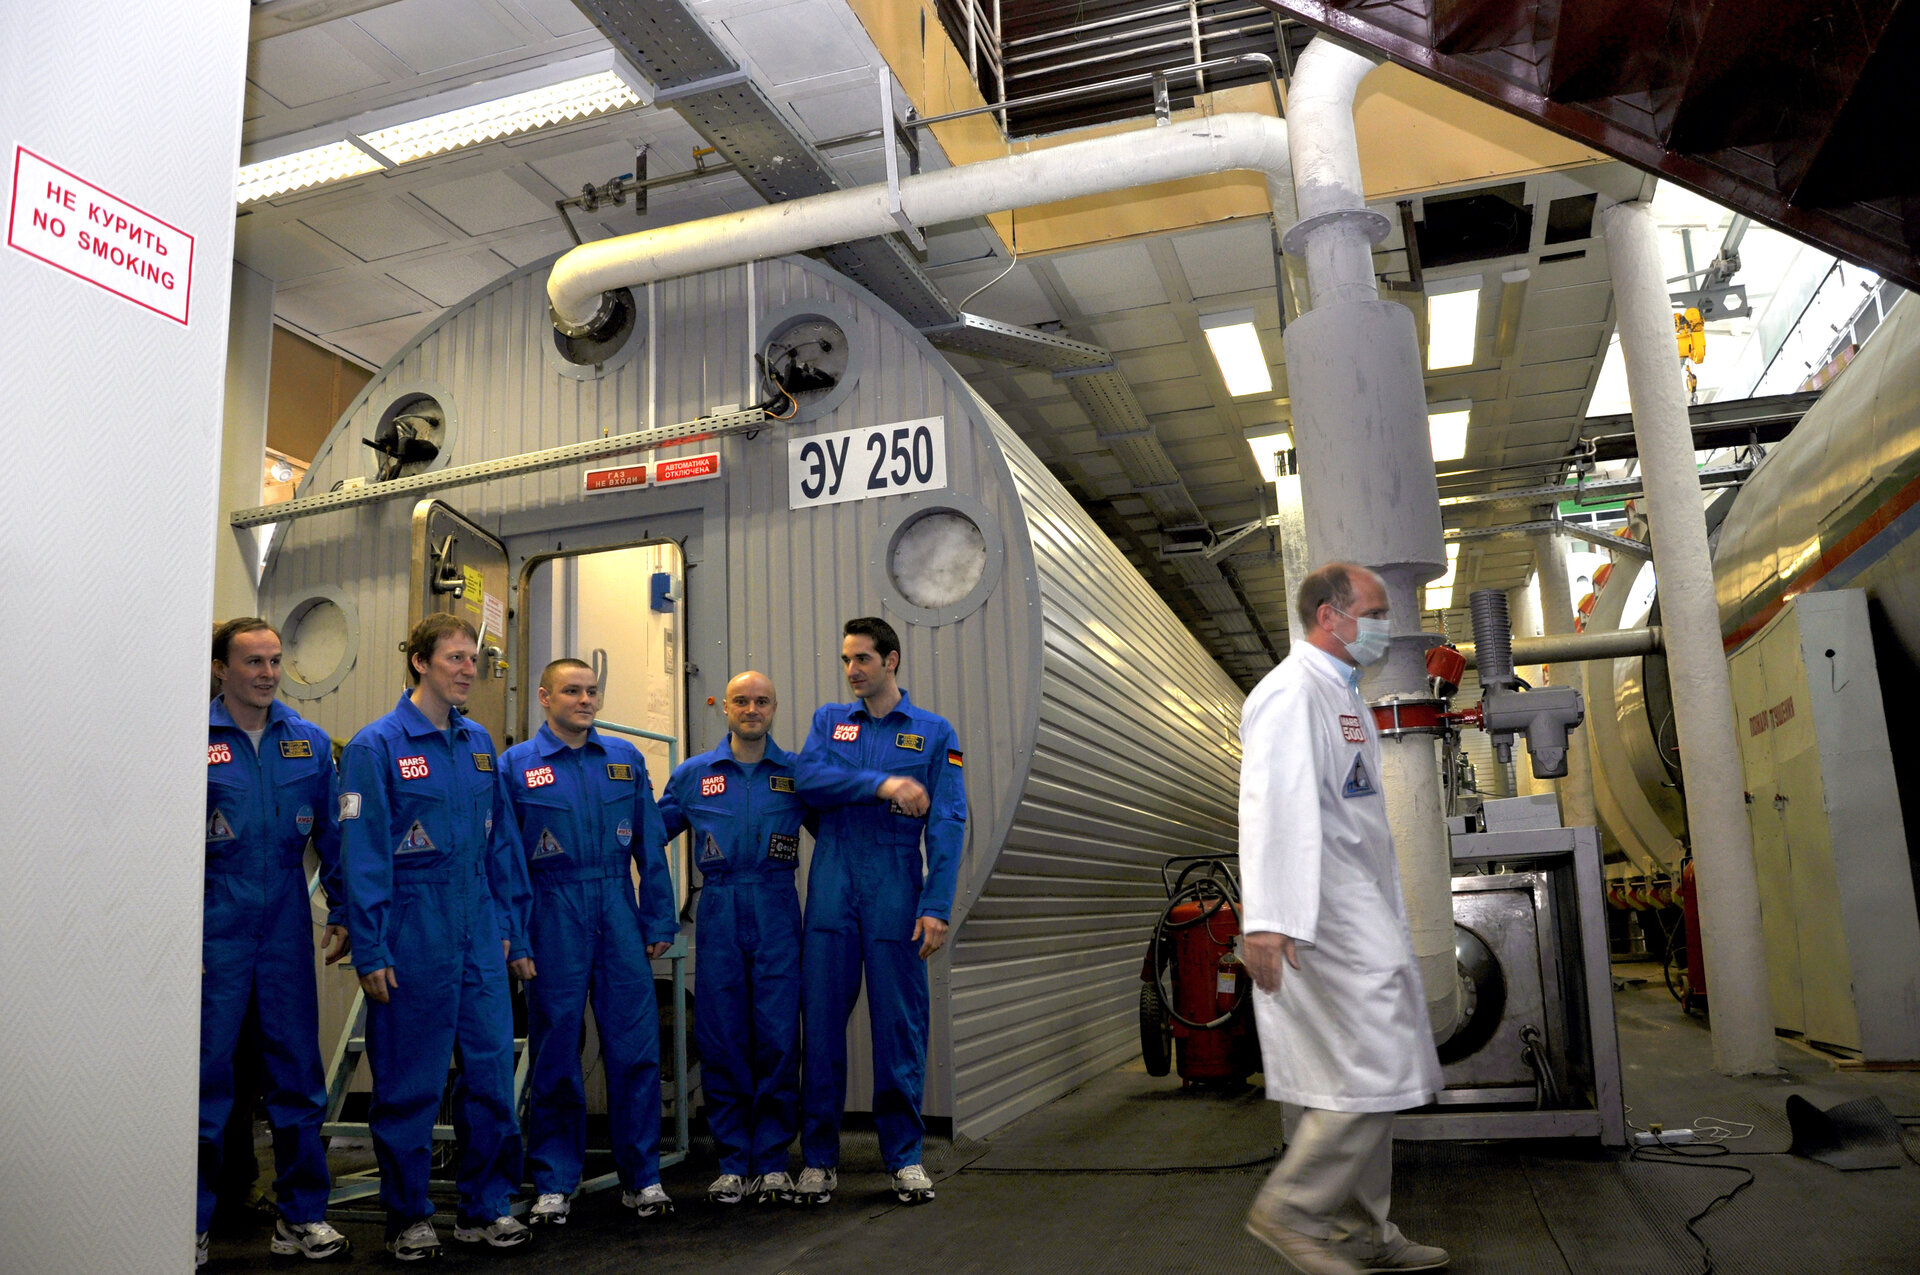 The Mars500 crew shortly after completing their 105-day Mars mission simulation